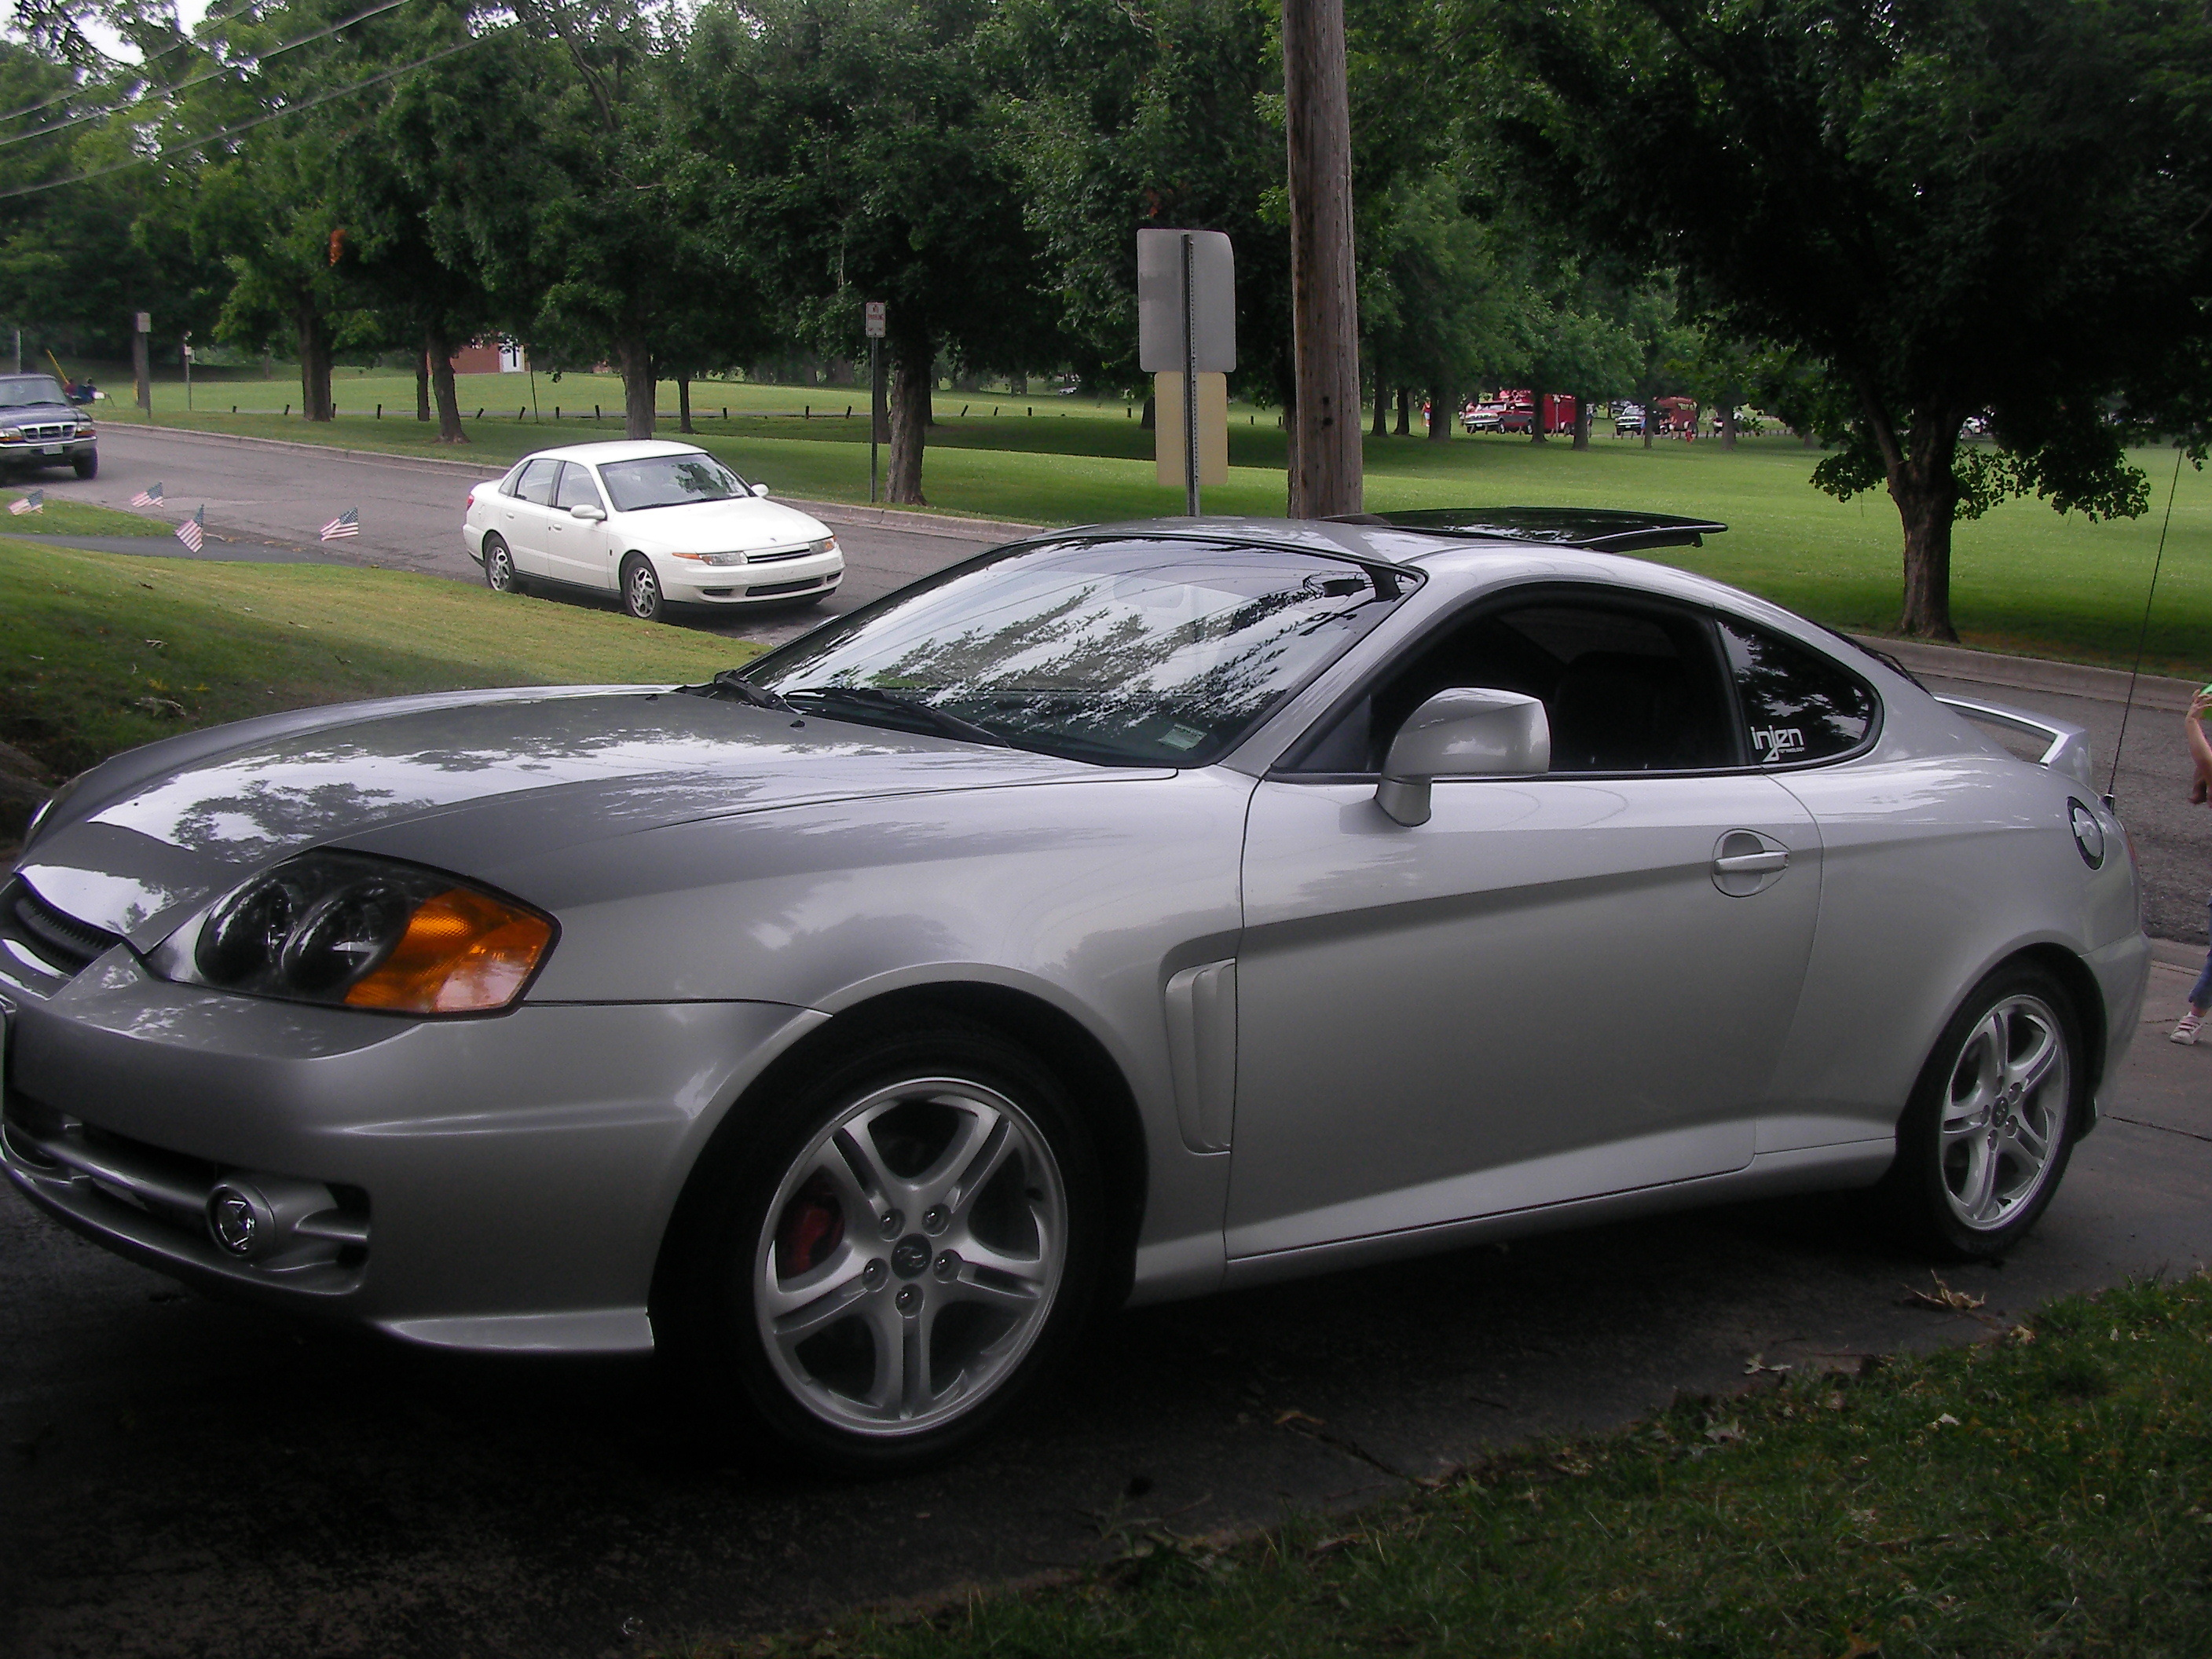 fearoffixation 39 s 2004 hyundai tiburon in jackson mo. Black Bedroom Furniture Sets. Home Design Ideas